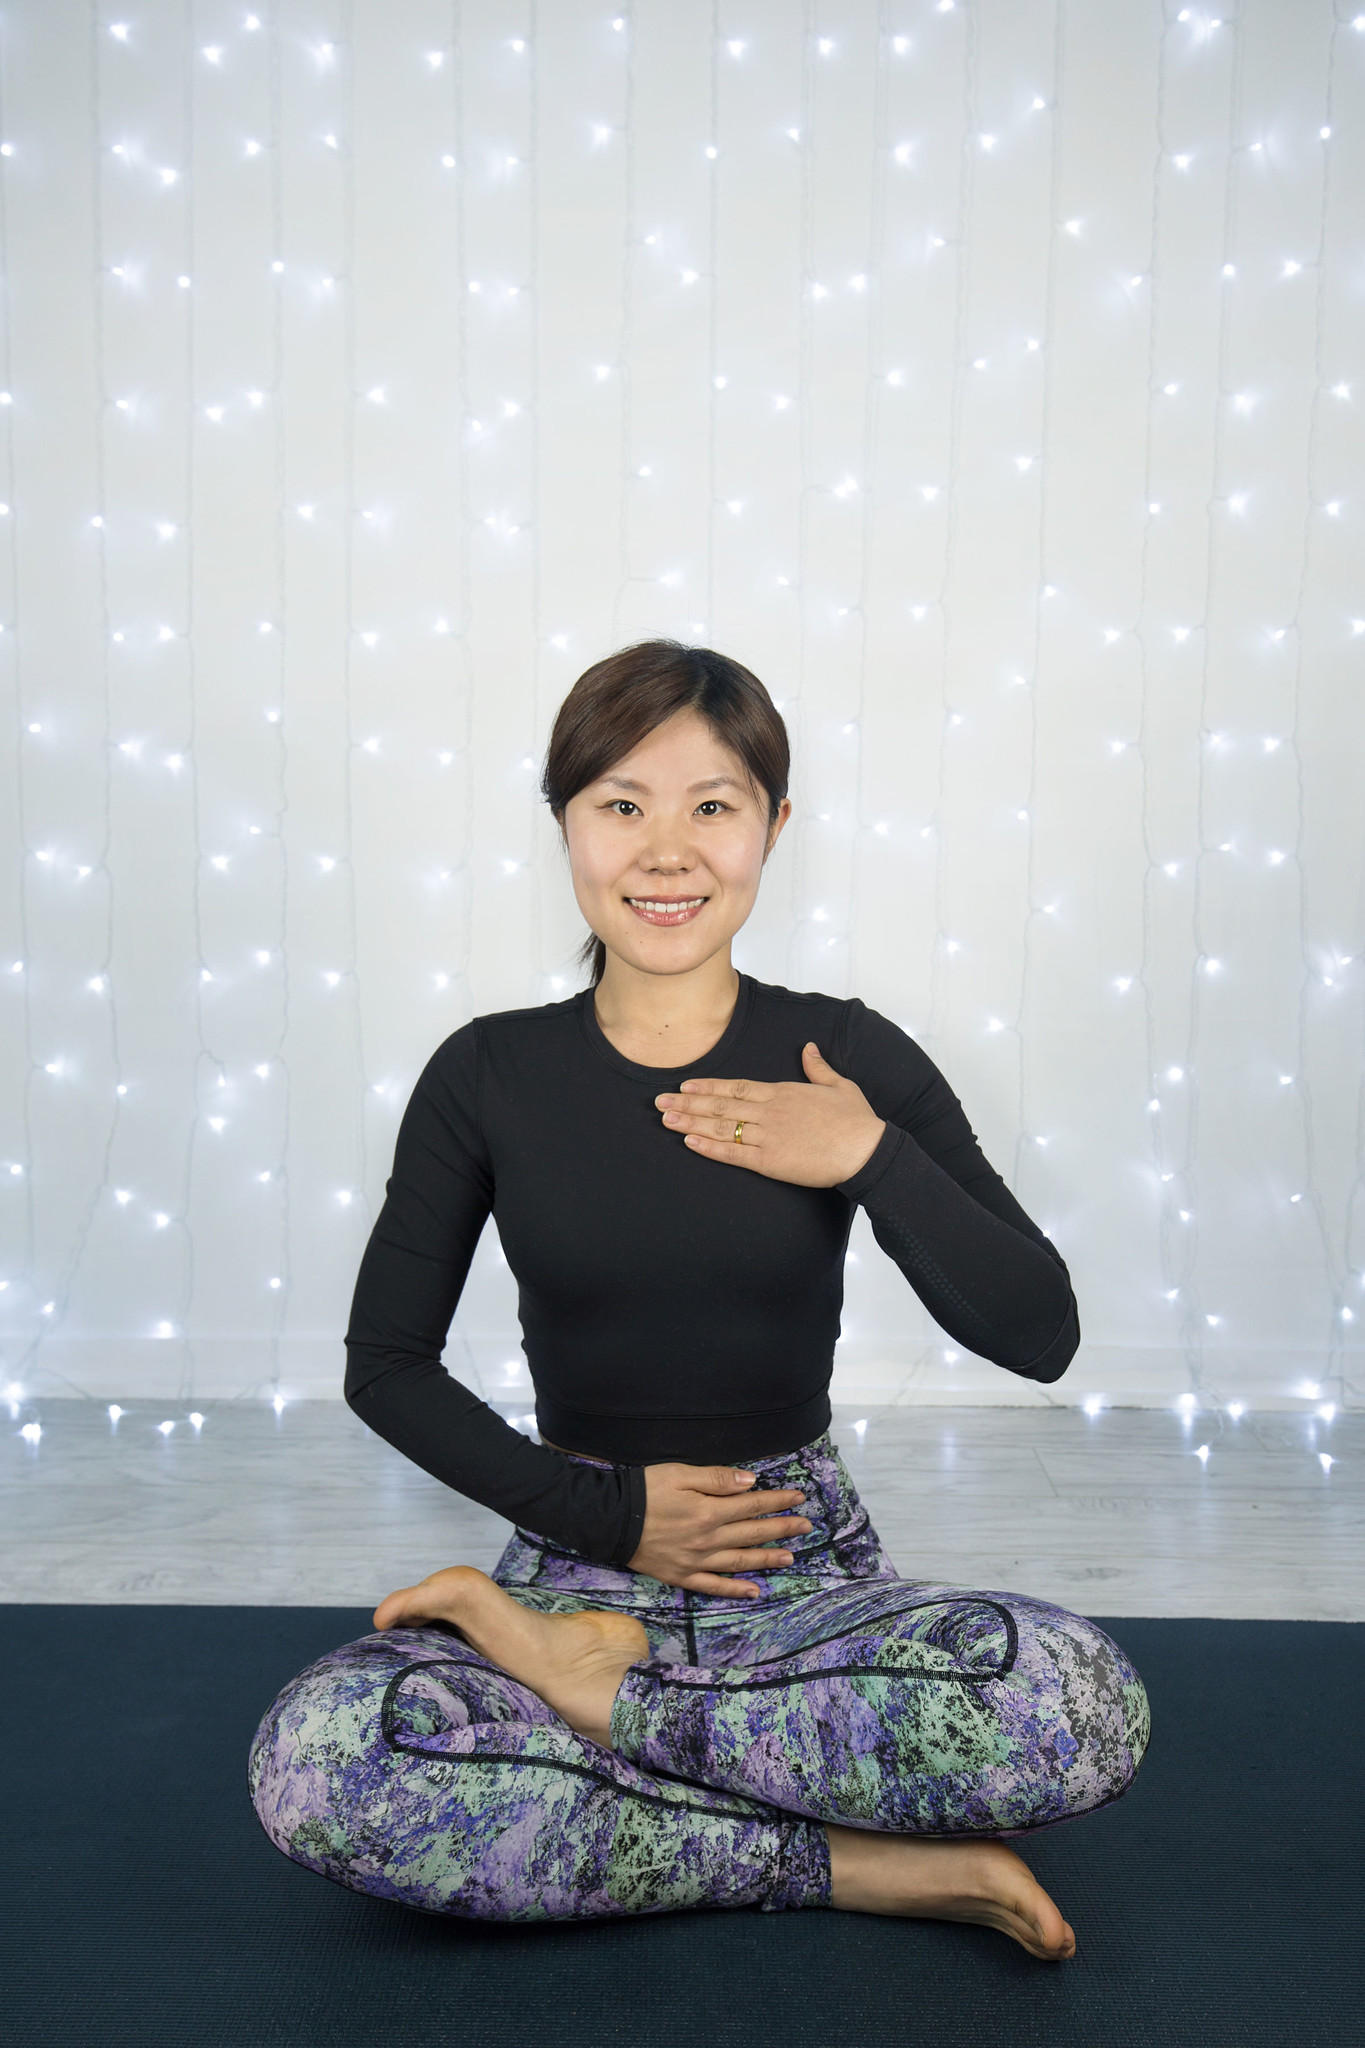 Please welcome our new Family and children's yoga teacher